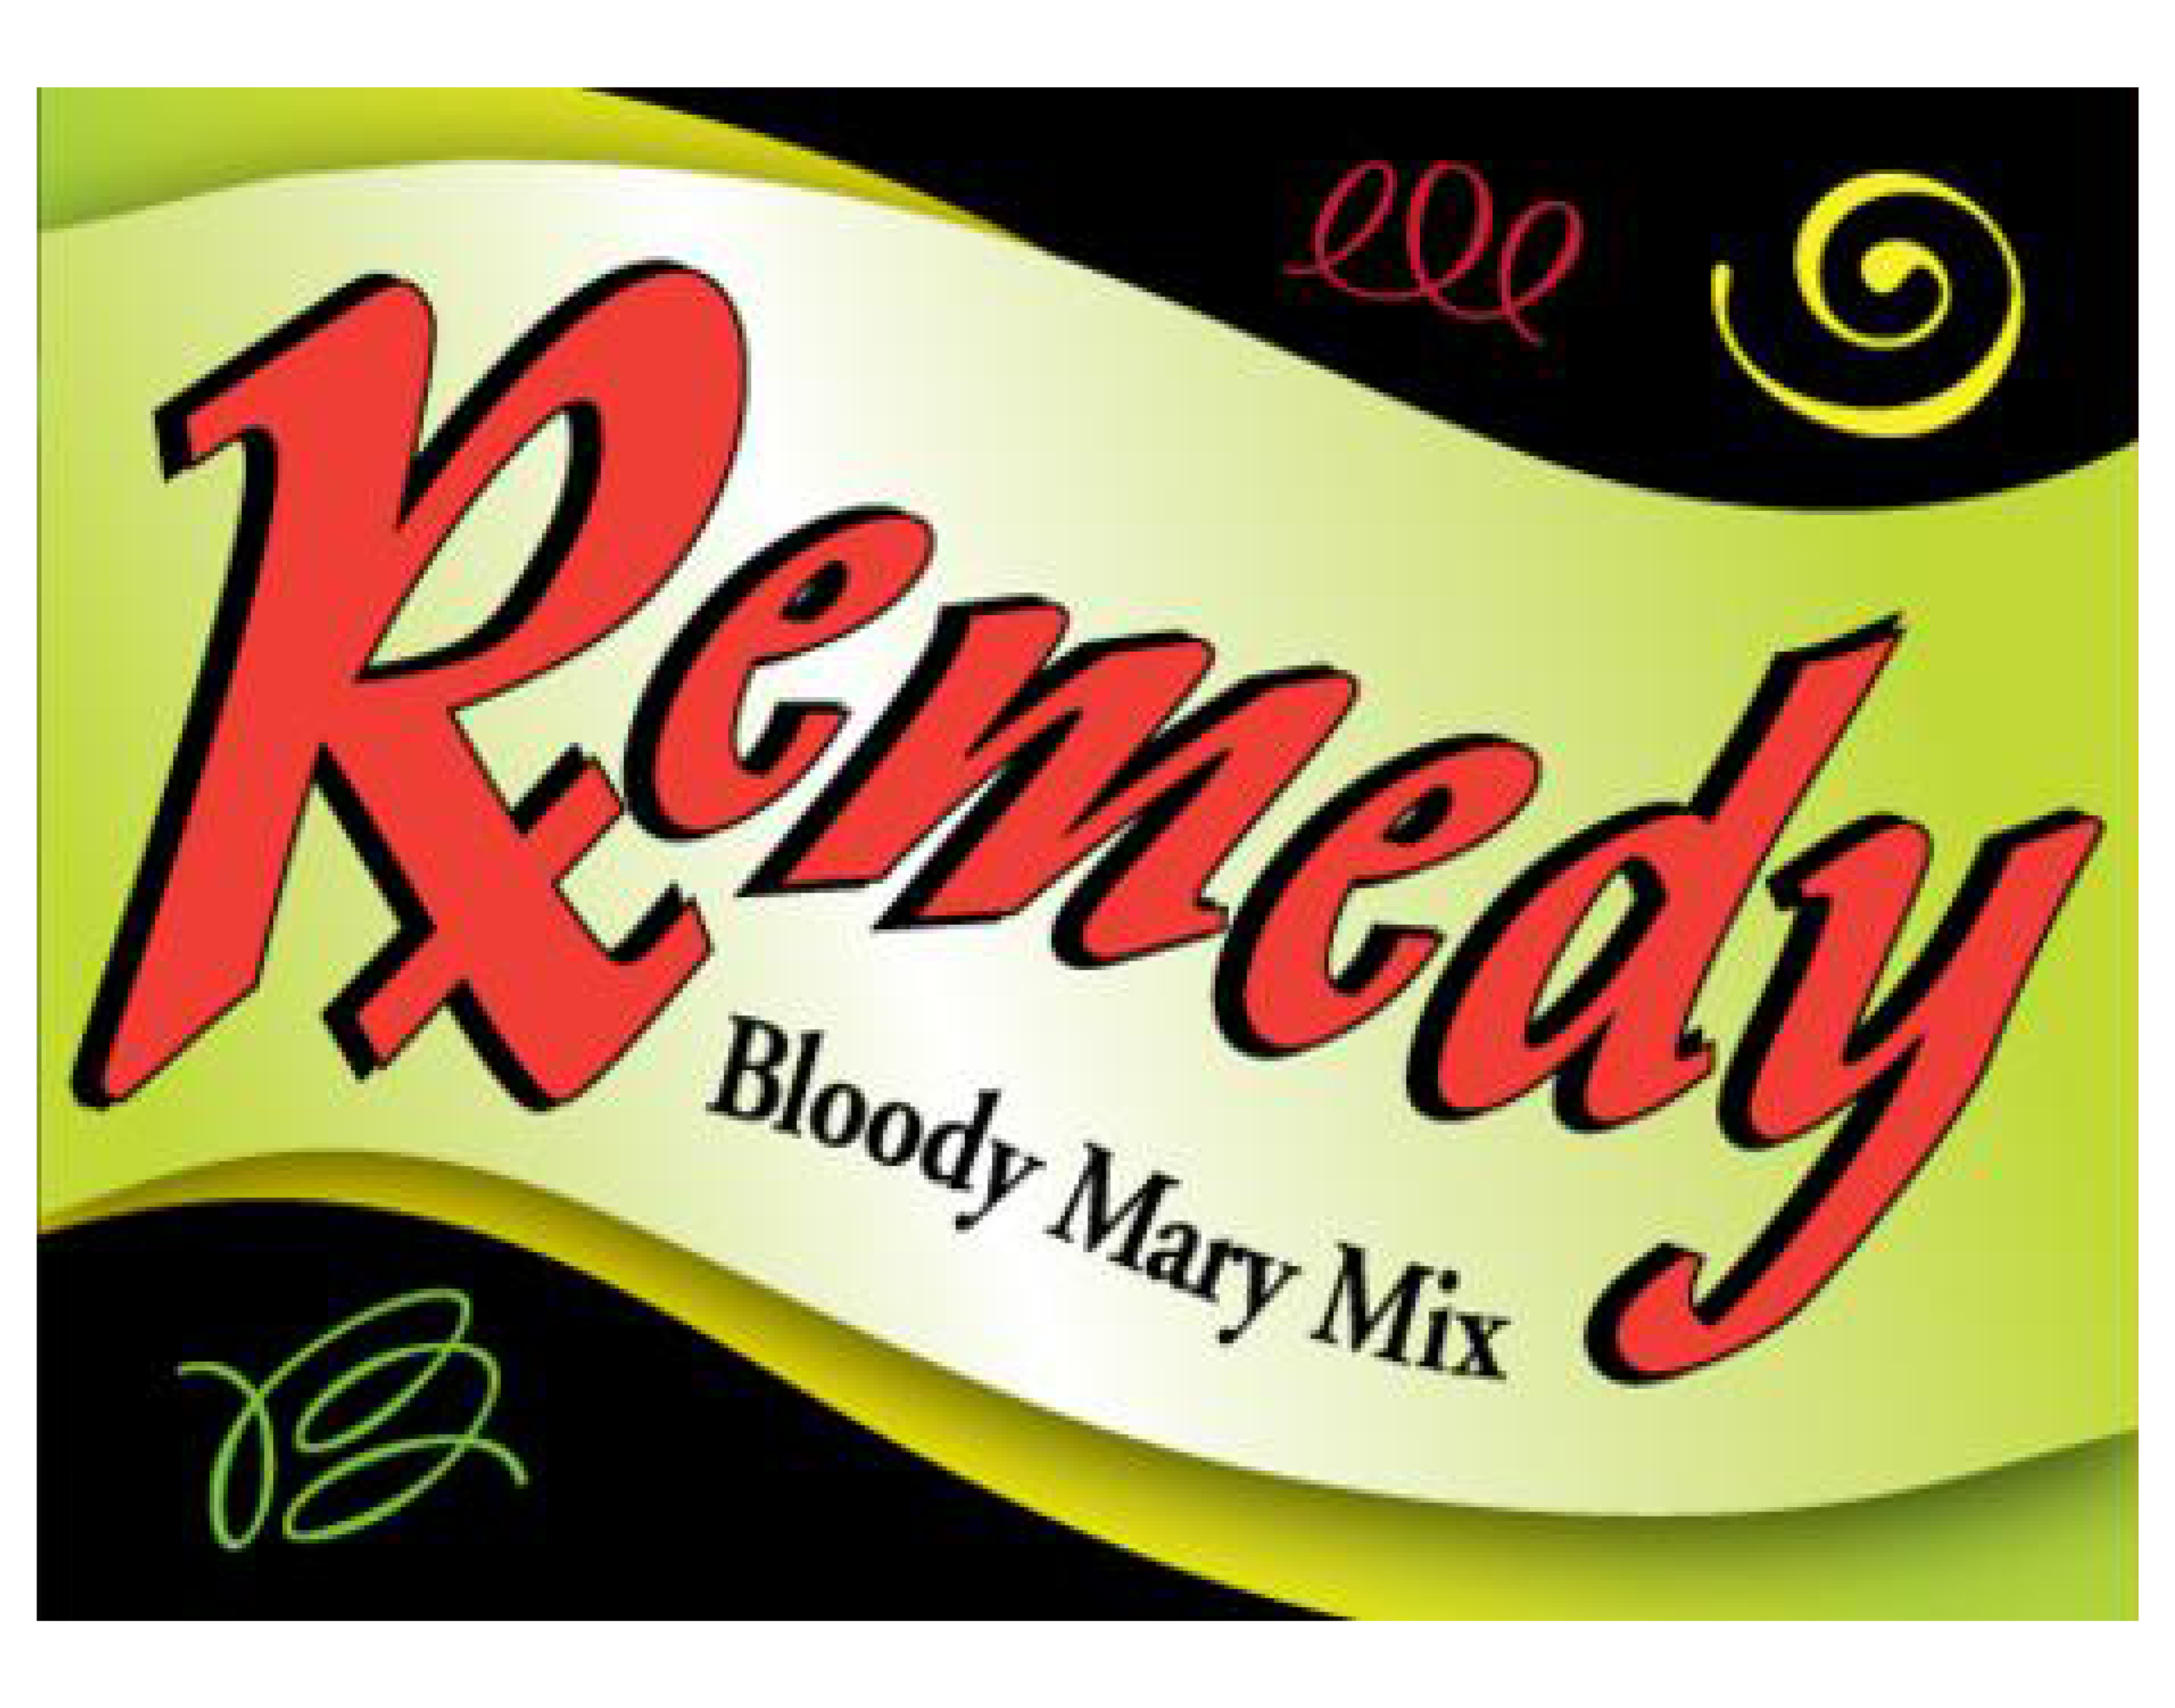 Remedy Bloody Mary Mix logo. Links to Remedy Bloody Mary Mix website.